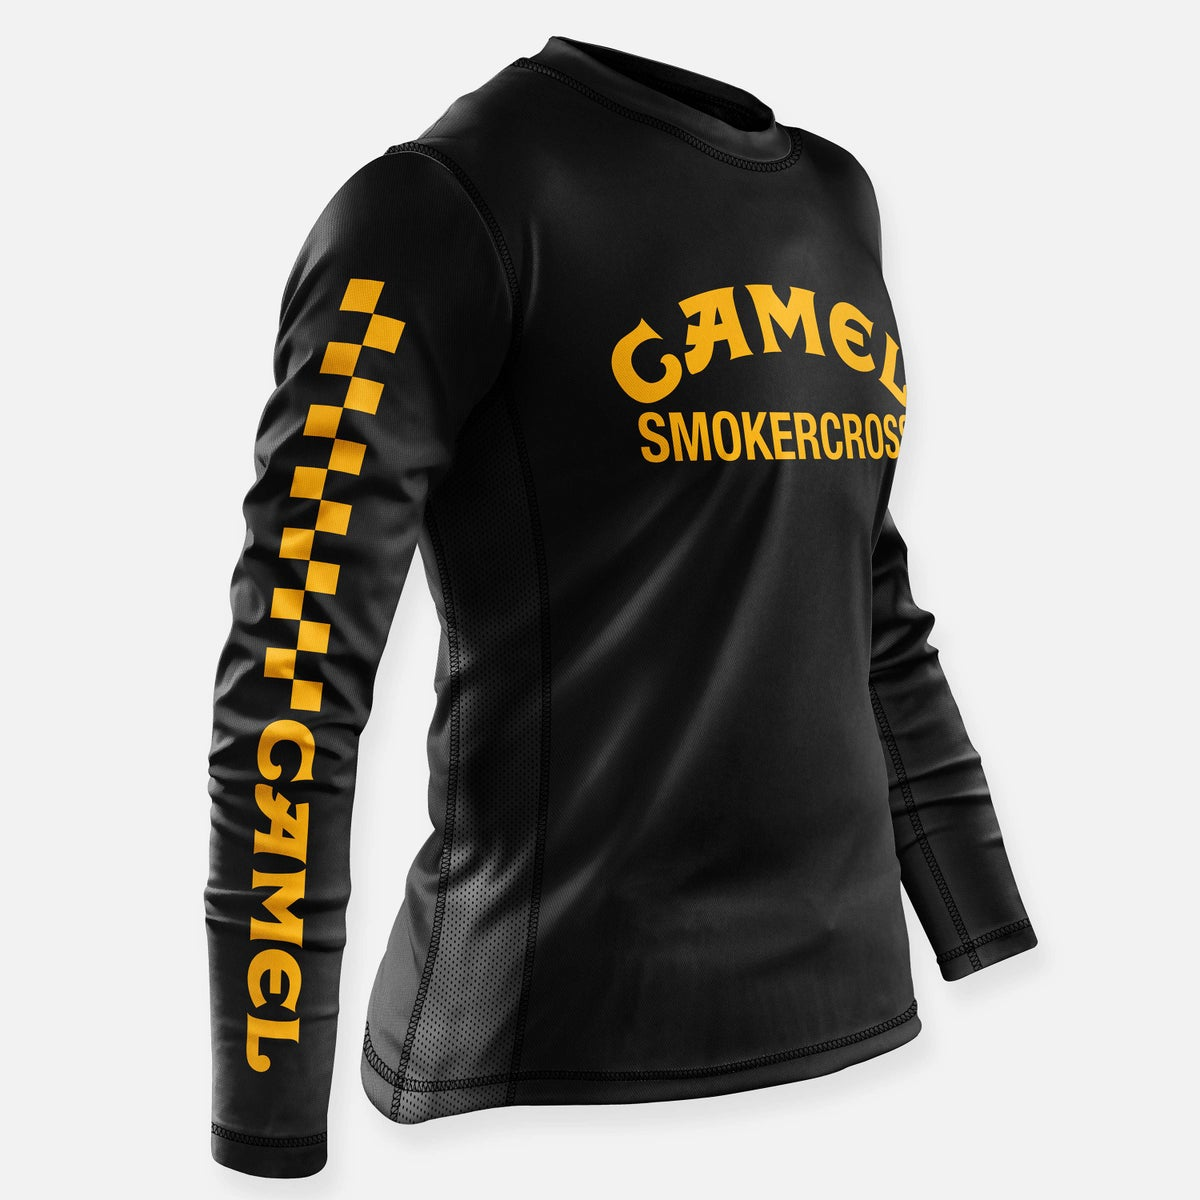 Image of CAMEL SMOKERCROSS JERSEY BLACK